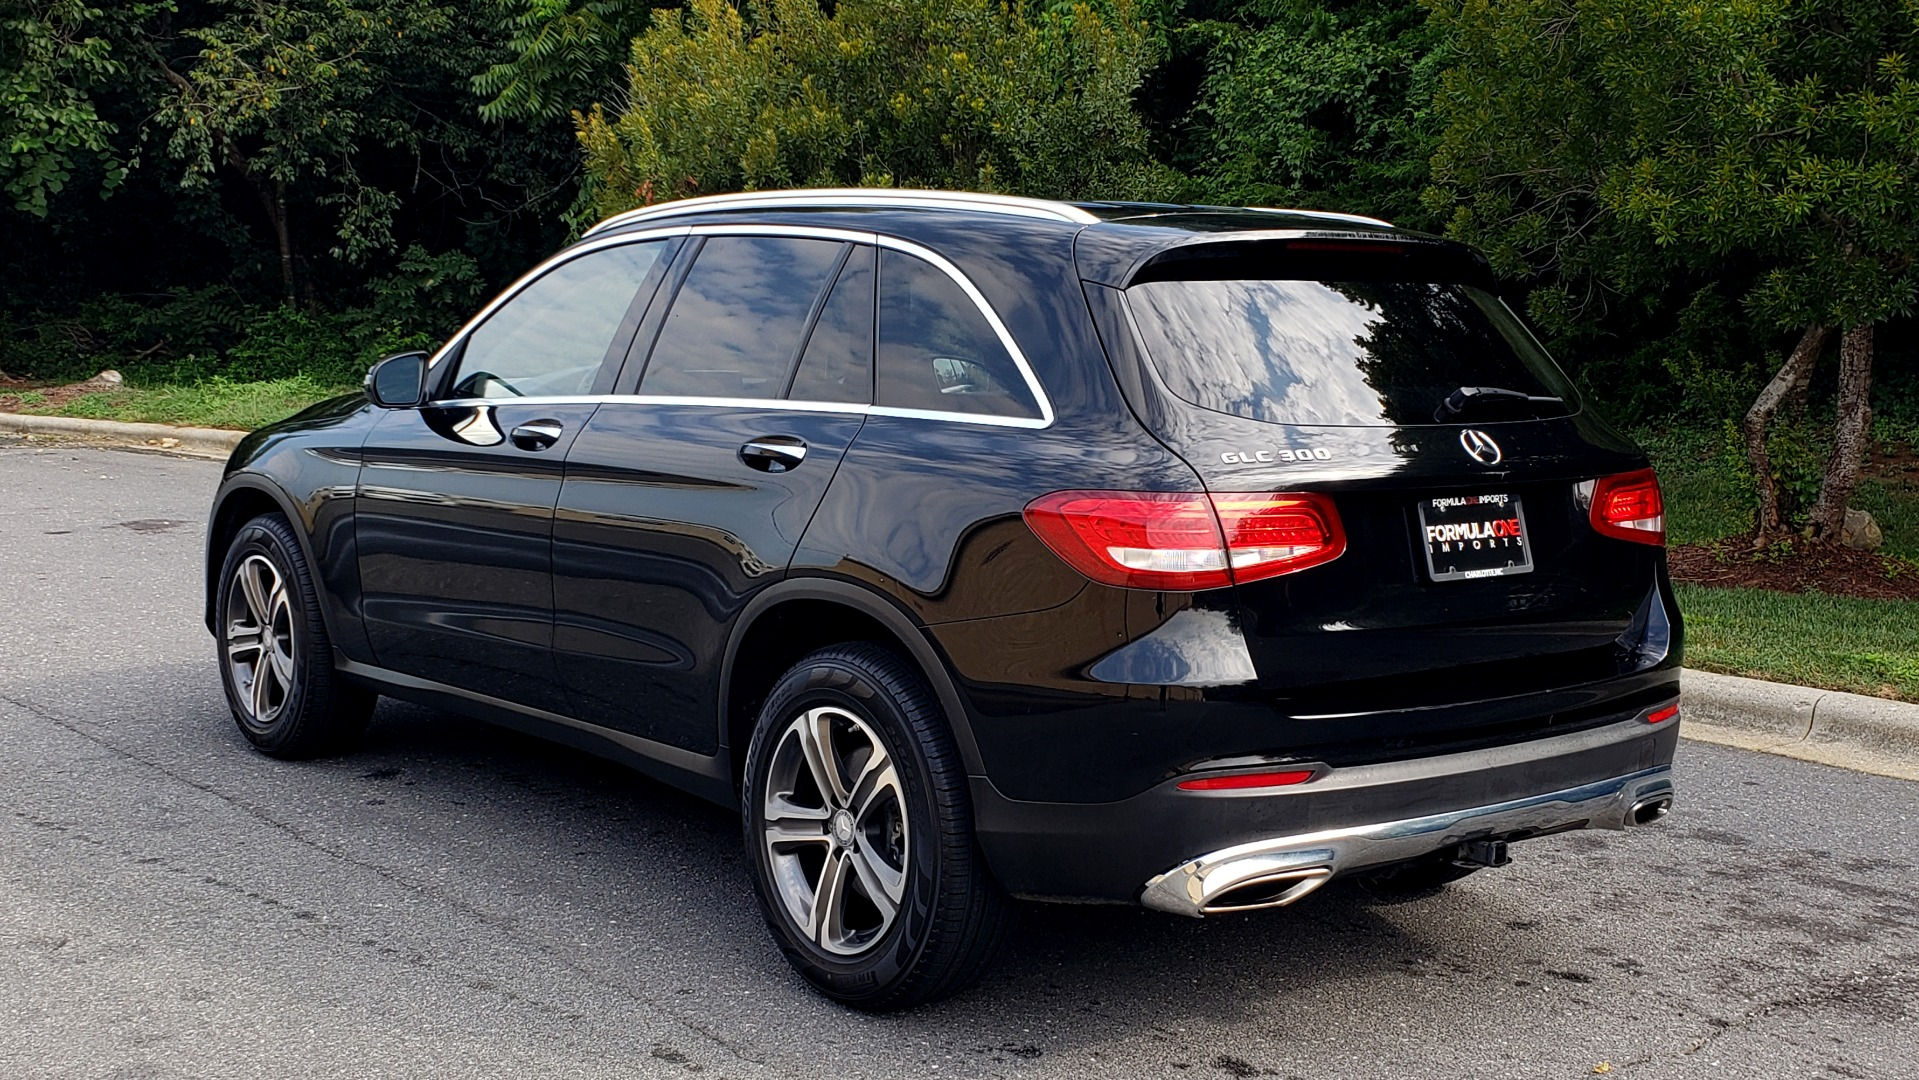 Used 2016 Mercedes-Benz GLC 300 / PANO-ROOF / HEATED SEATS / REARVIEW / NEW TIRES for sale Sold at Formula Imports in Charlotte NC 28227 3